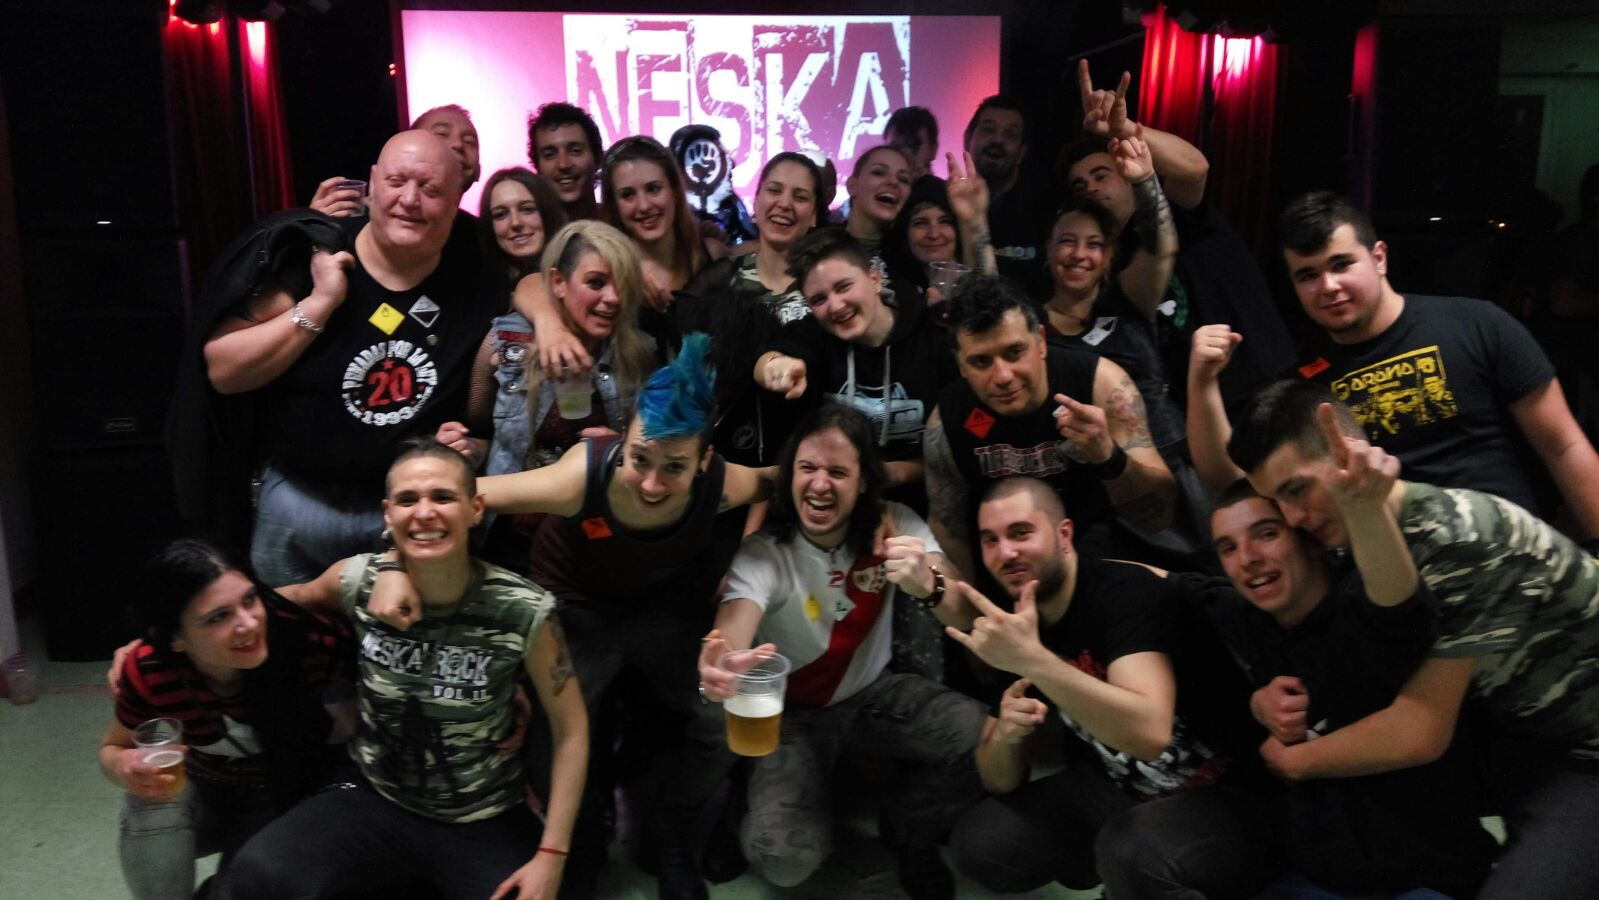 Neska Rock- where it all started